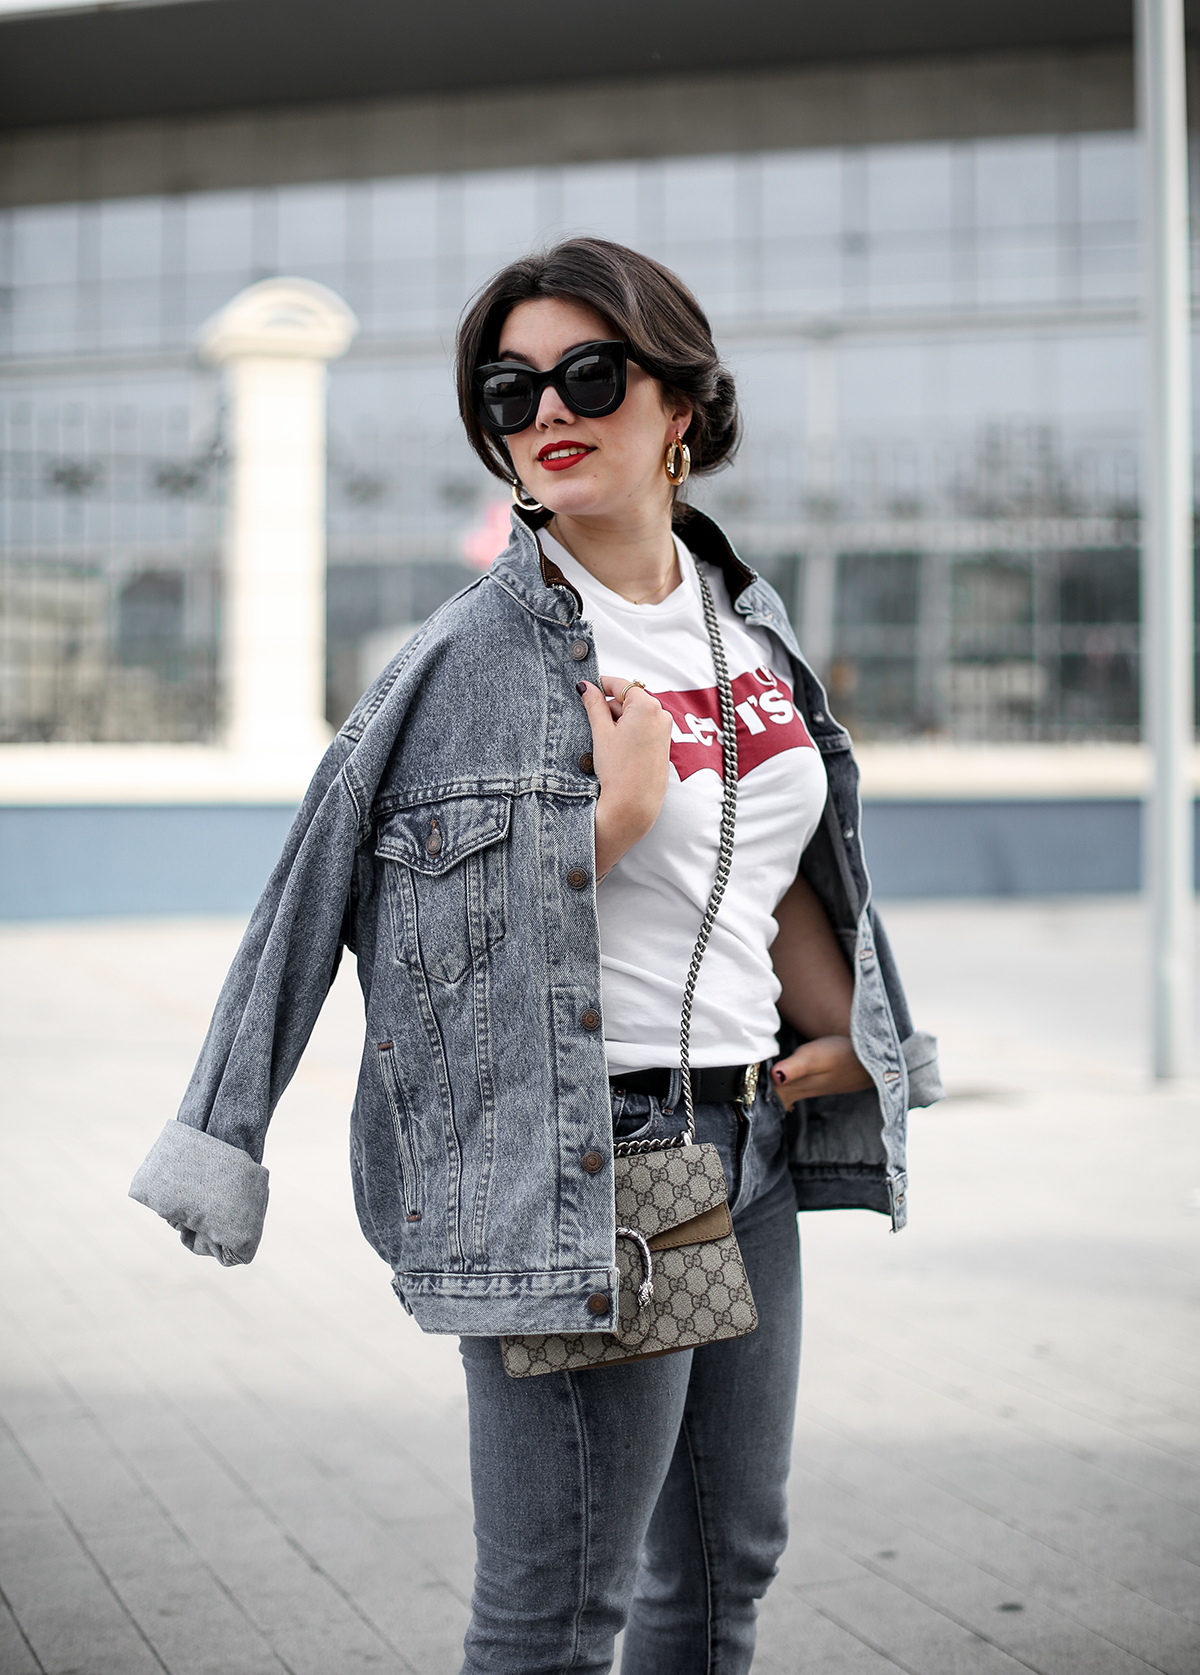 denim-total-look-levis-girl-vintage-gucci-horsebit-shoes-dionysus-bag11